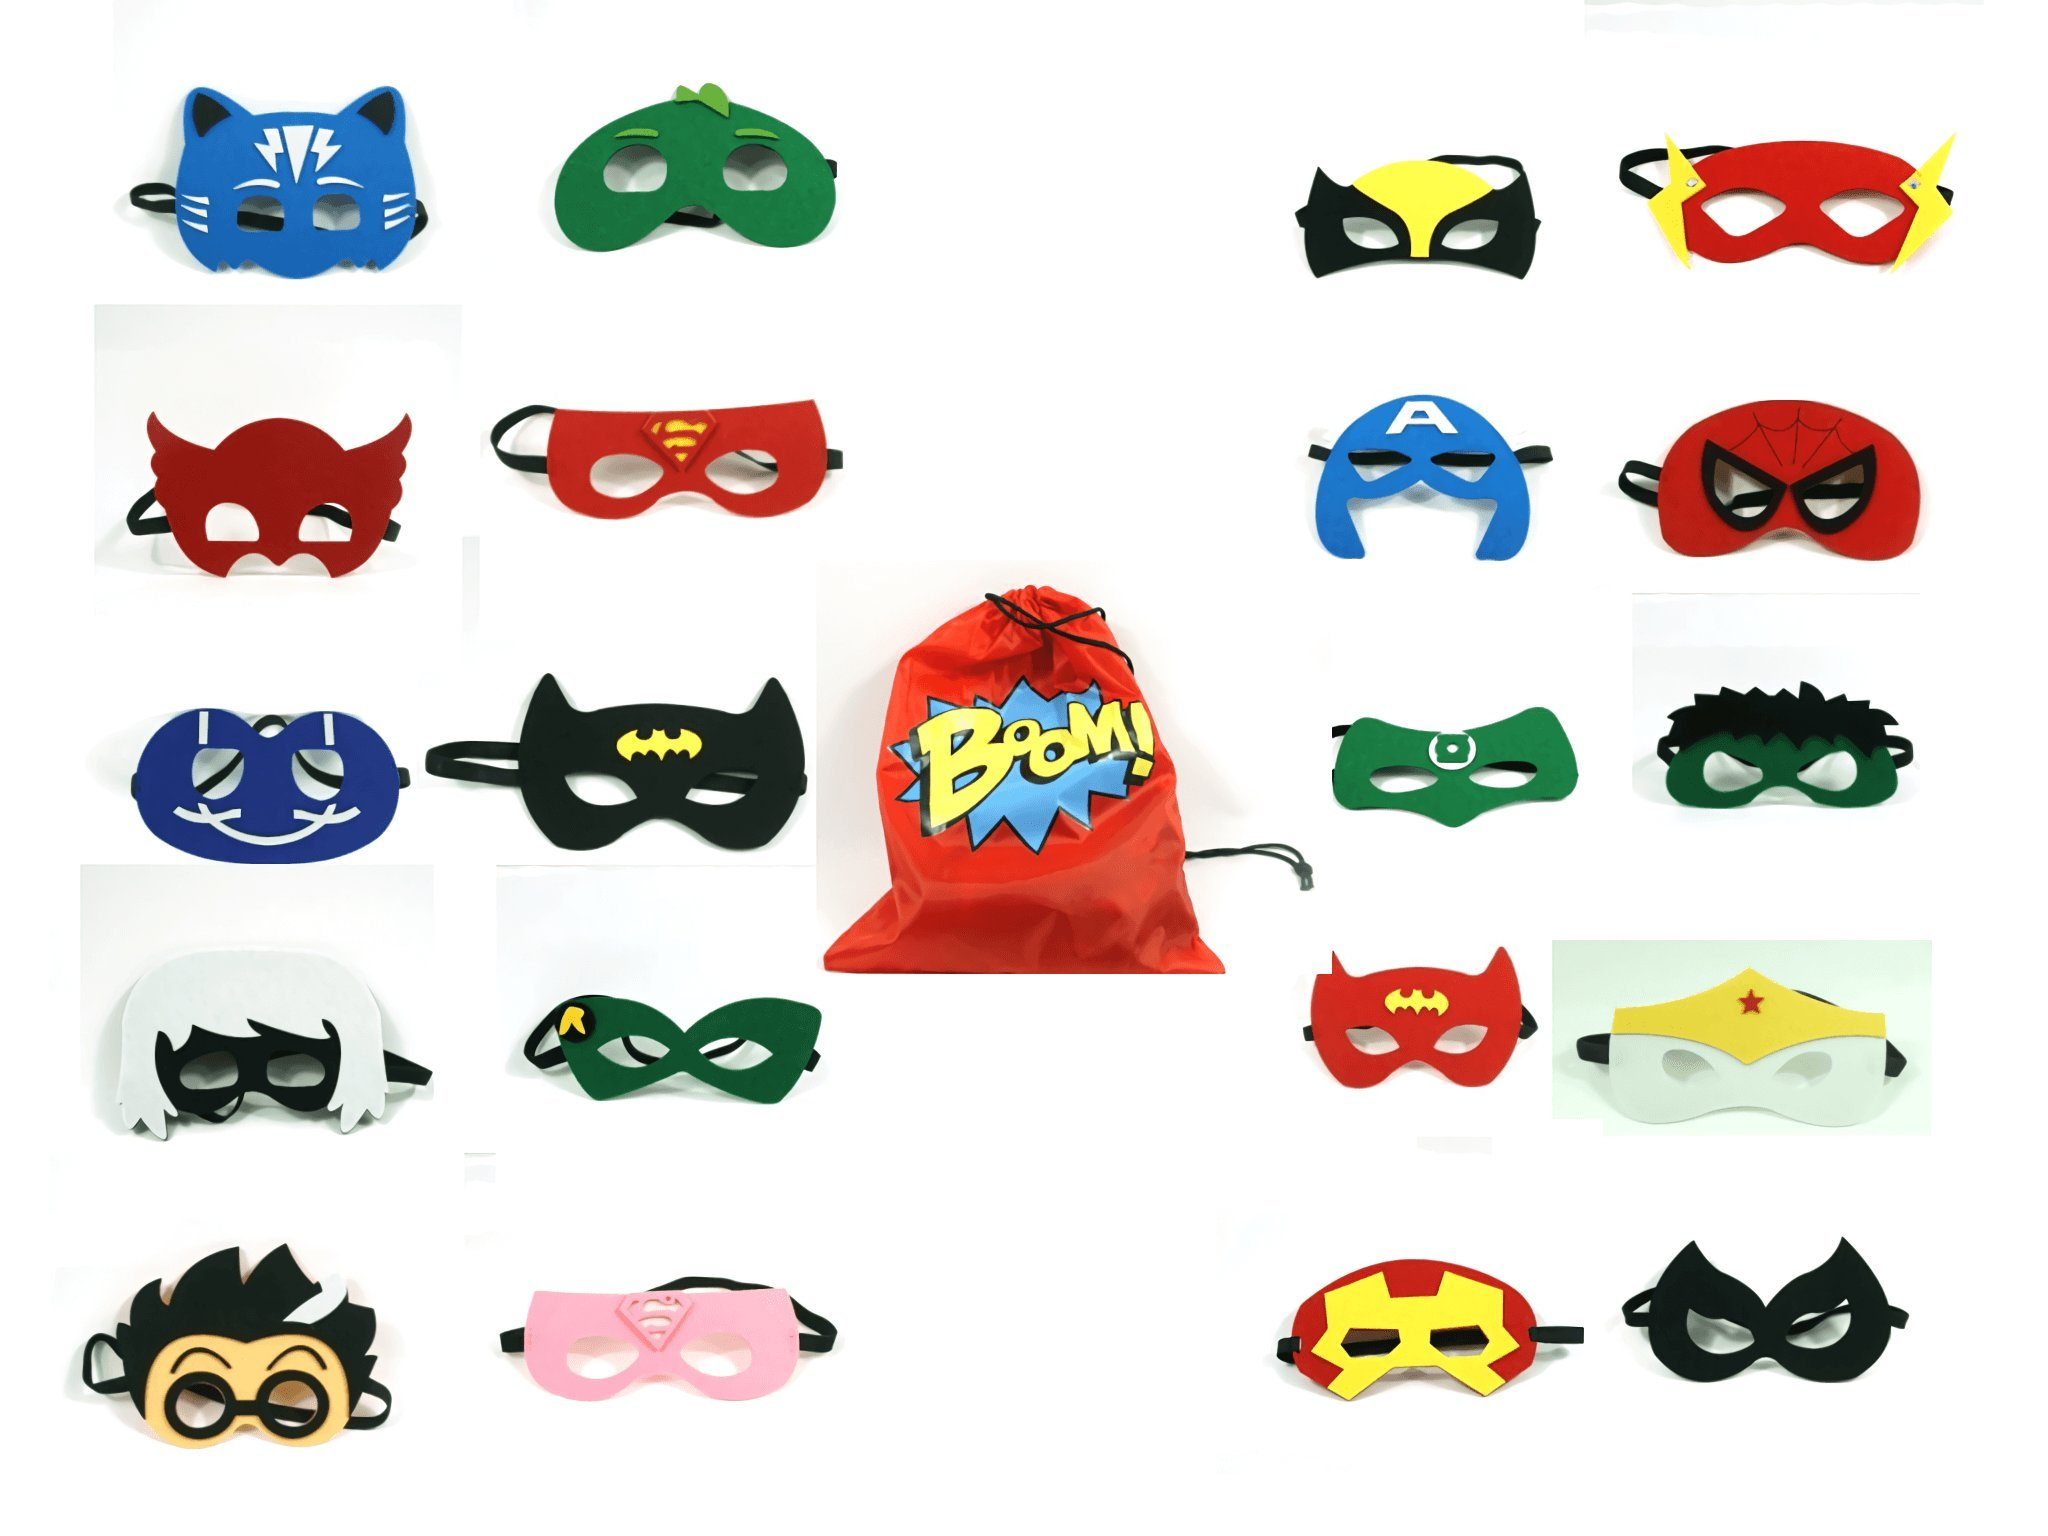 Superhero Party Supplies Superhero Masks Kids - Custom Design Superhero Bag - 20 PCs Different Party Favors Cosplay Boys Girls - Party Masks Photo Booth Props